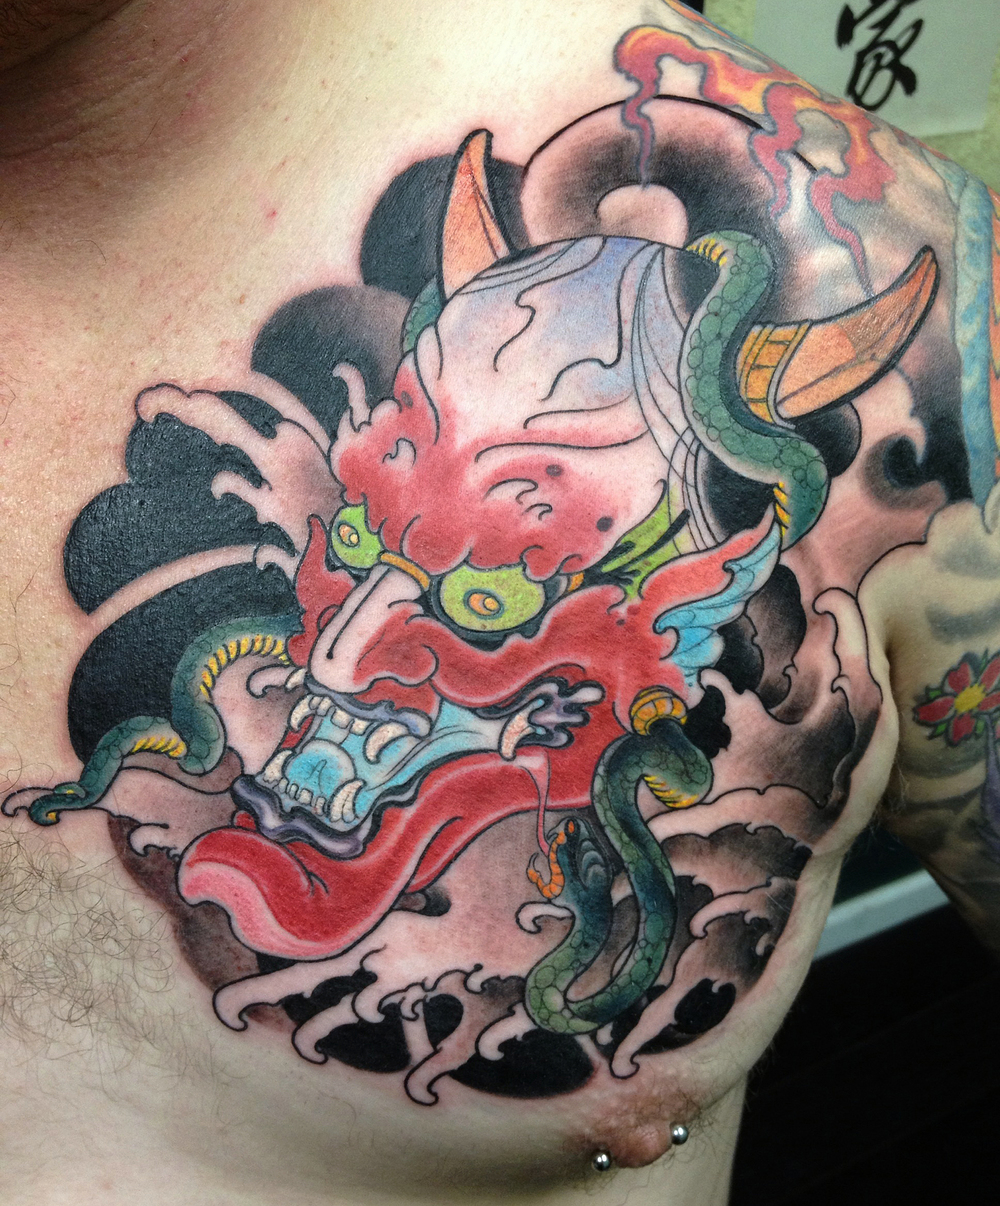 asian-mask-Tattoo -LA-LosAngeles-besttattoo-besttattooartist-besttattooartists-top-pictures-images-photo-tat-ink-inked-bigboy-guestartist-rabblerousertattoo